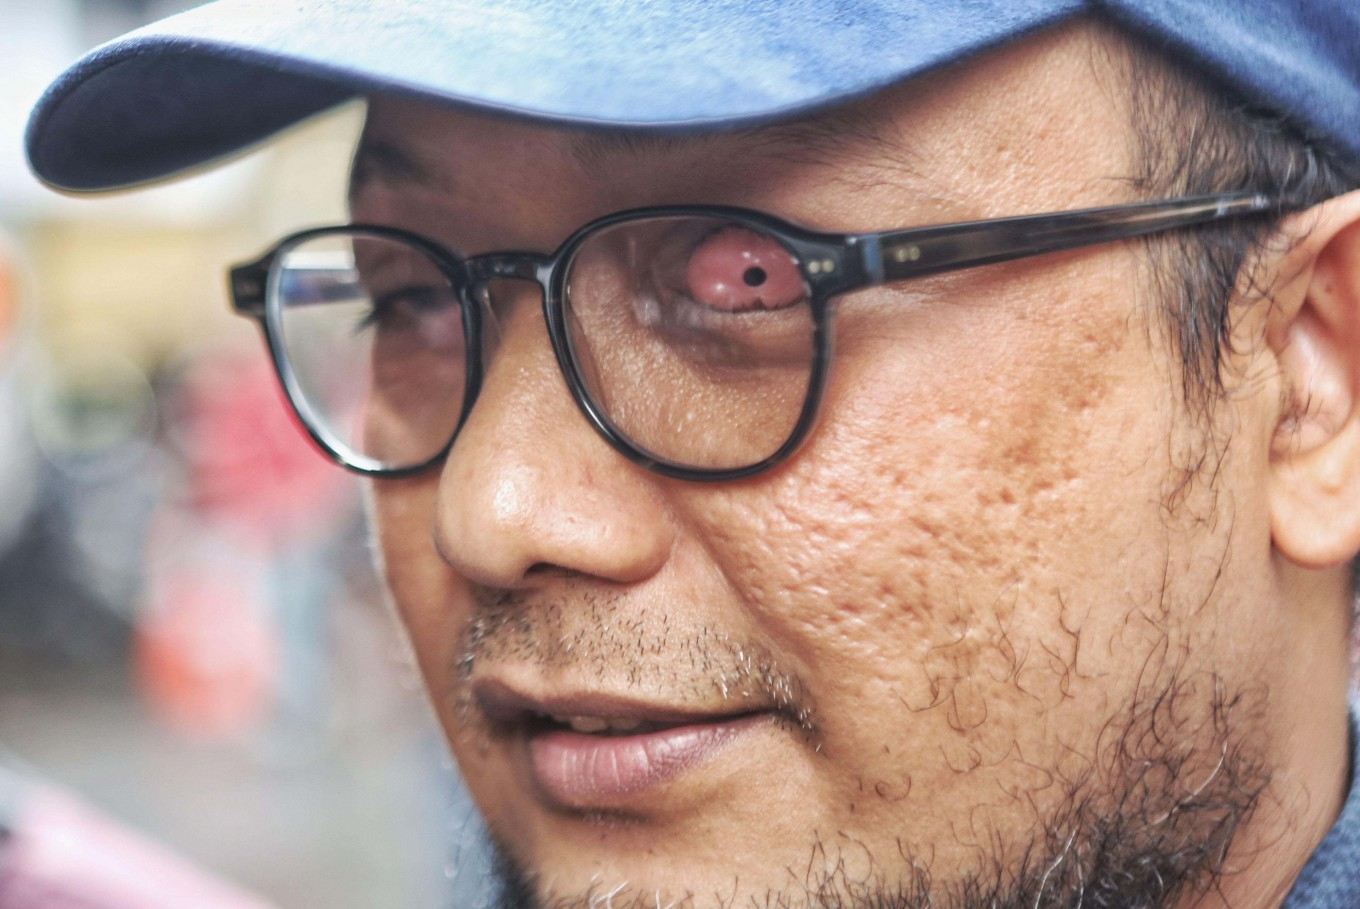 Jokowi hopes for 'fair' verdict in Novel Baswedan's acid attack trial: State Palace